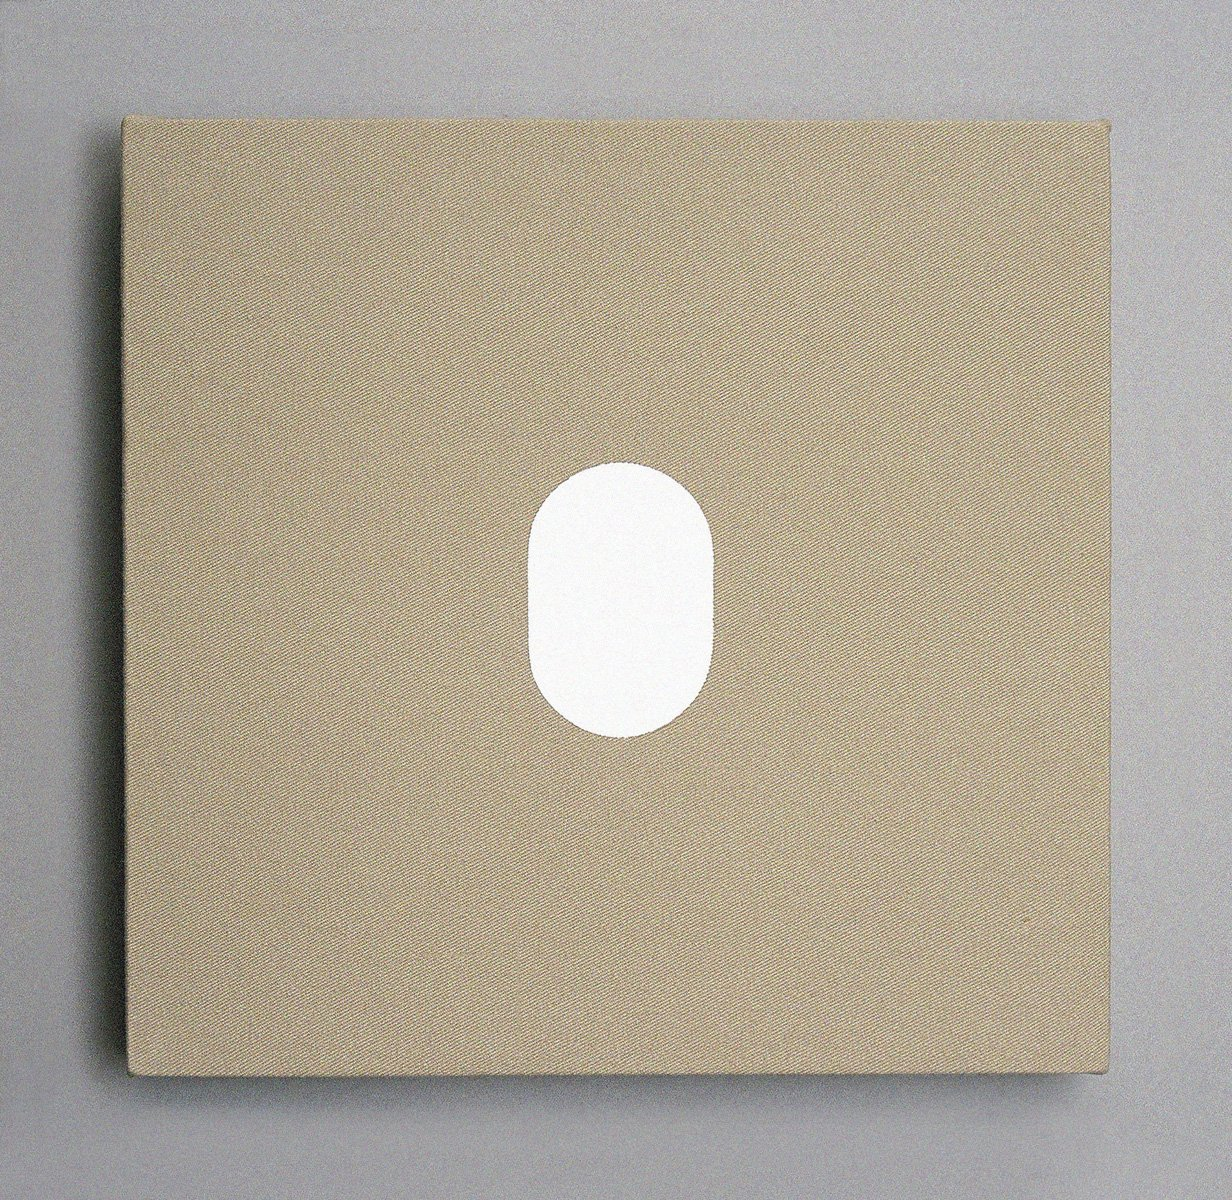 A taupe canvas square with a hard-edge white oval painted in the center.